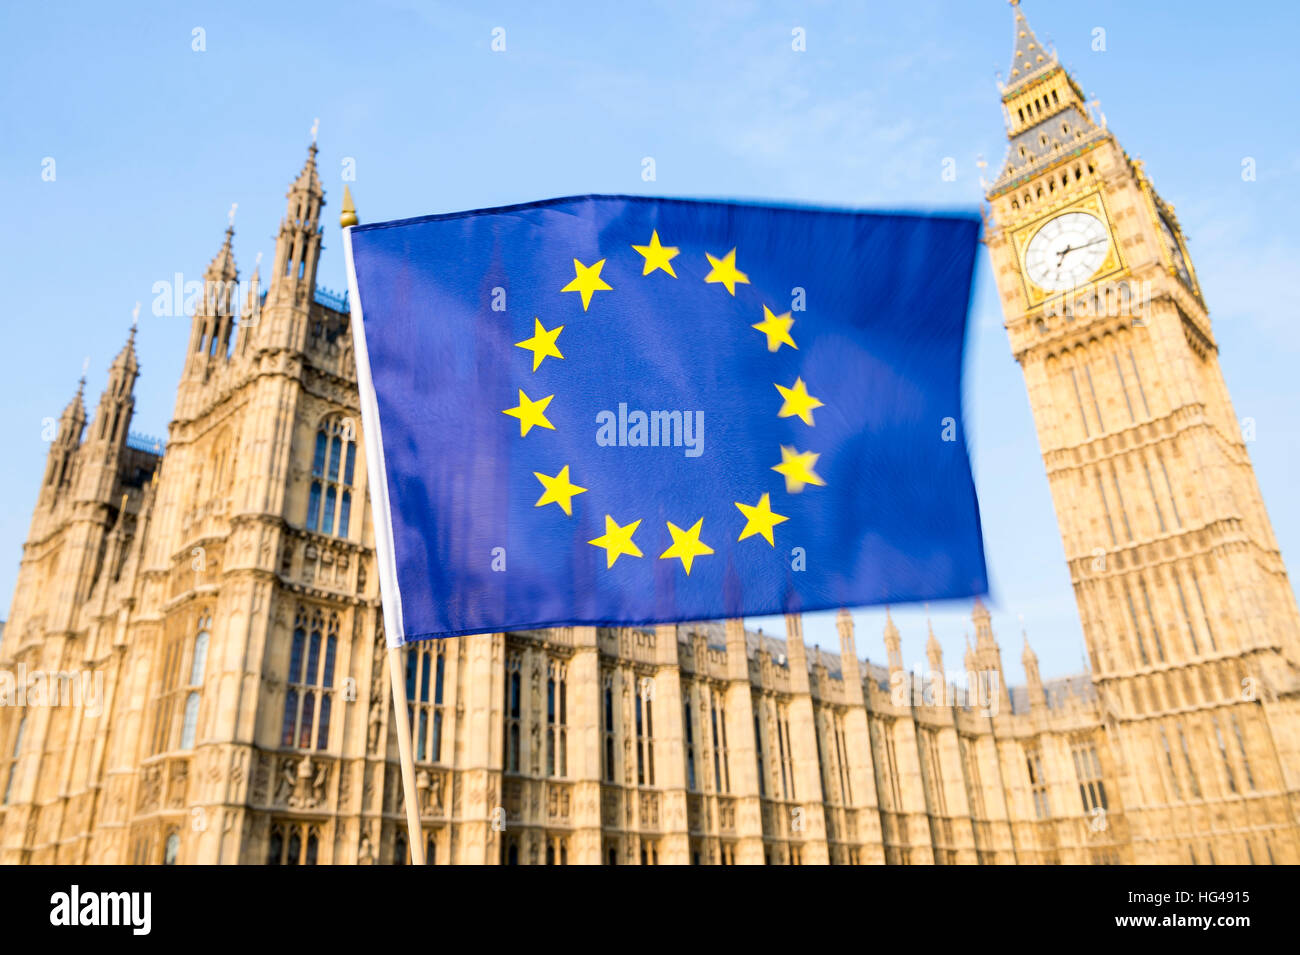 European Union flag flying in front of the Houses of Westminster in London - Stock Image